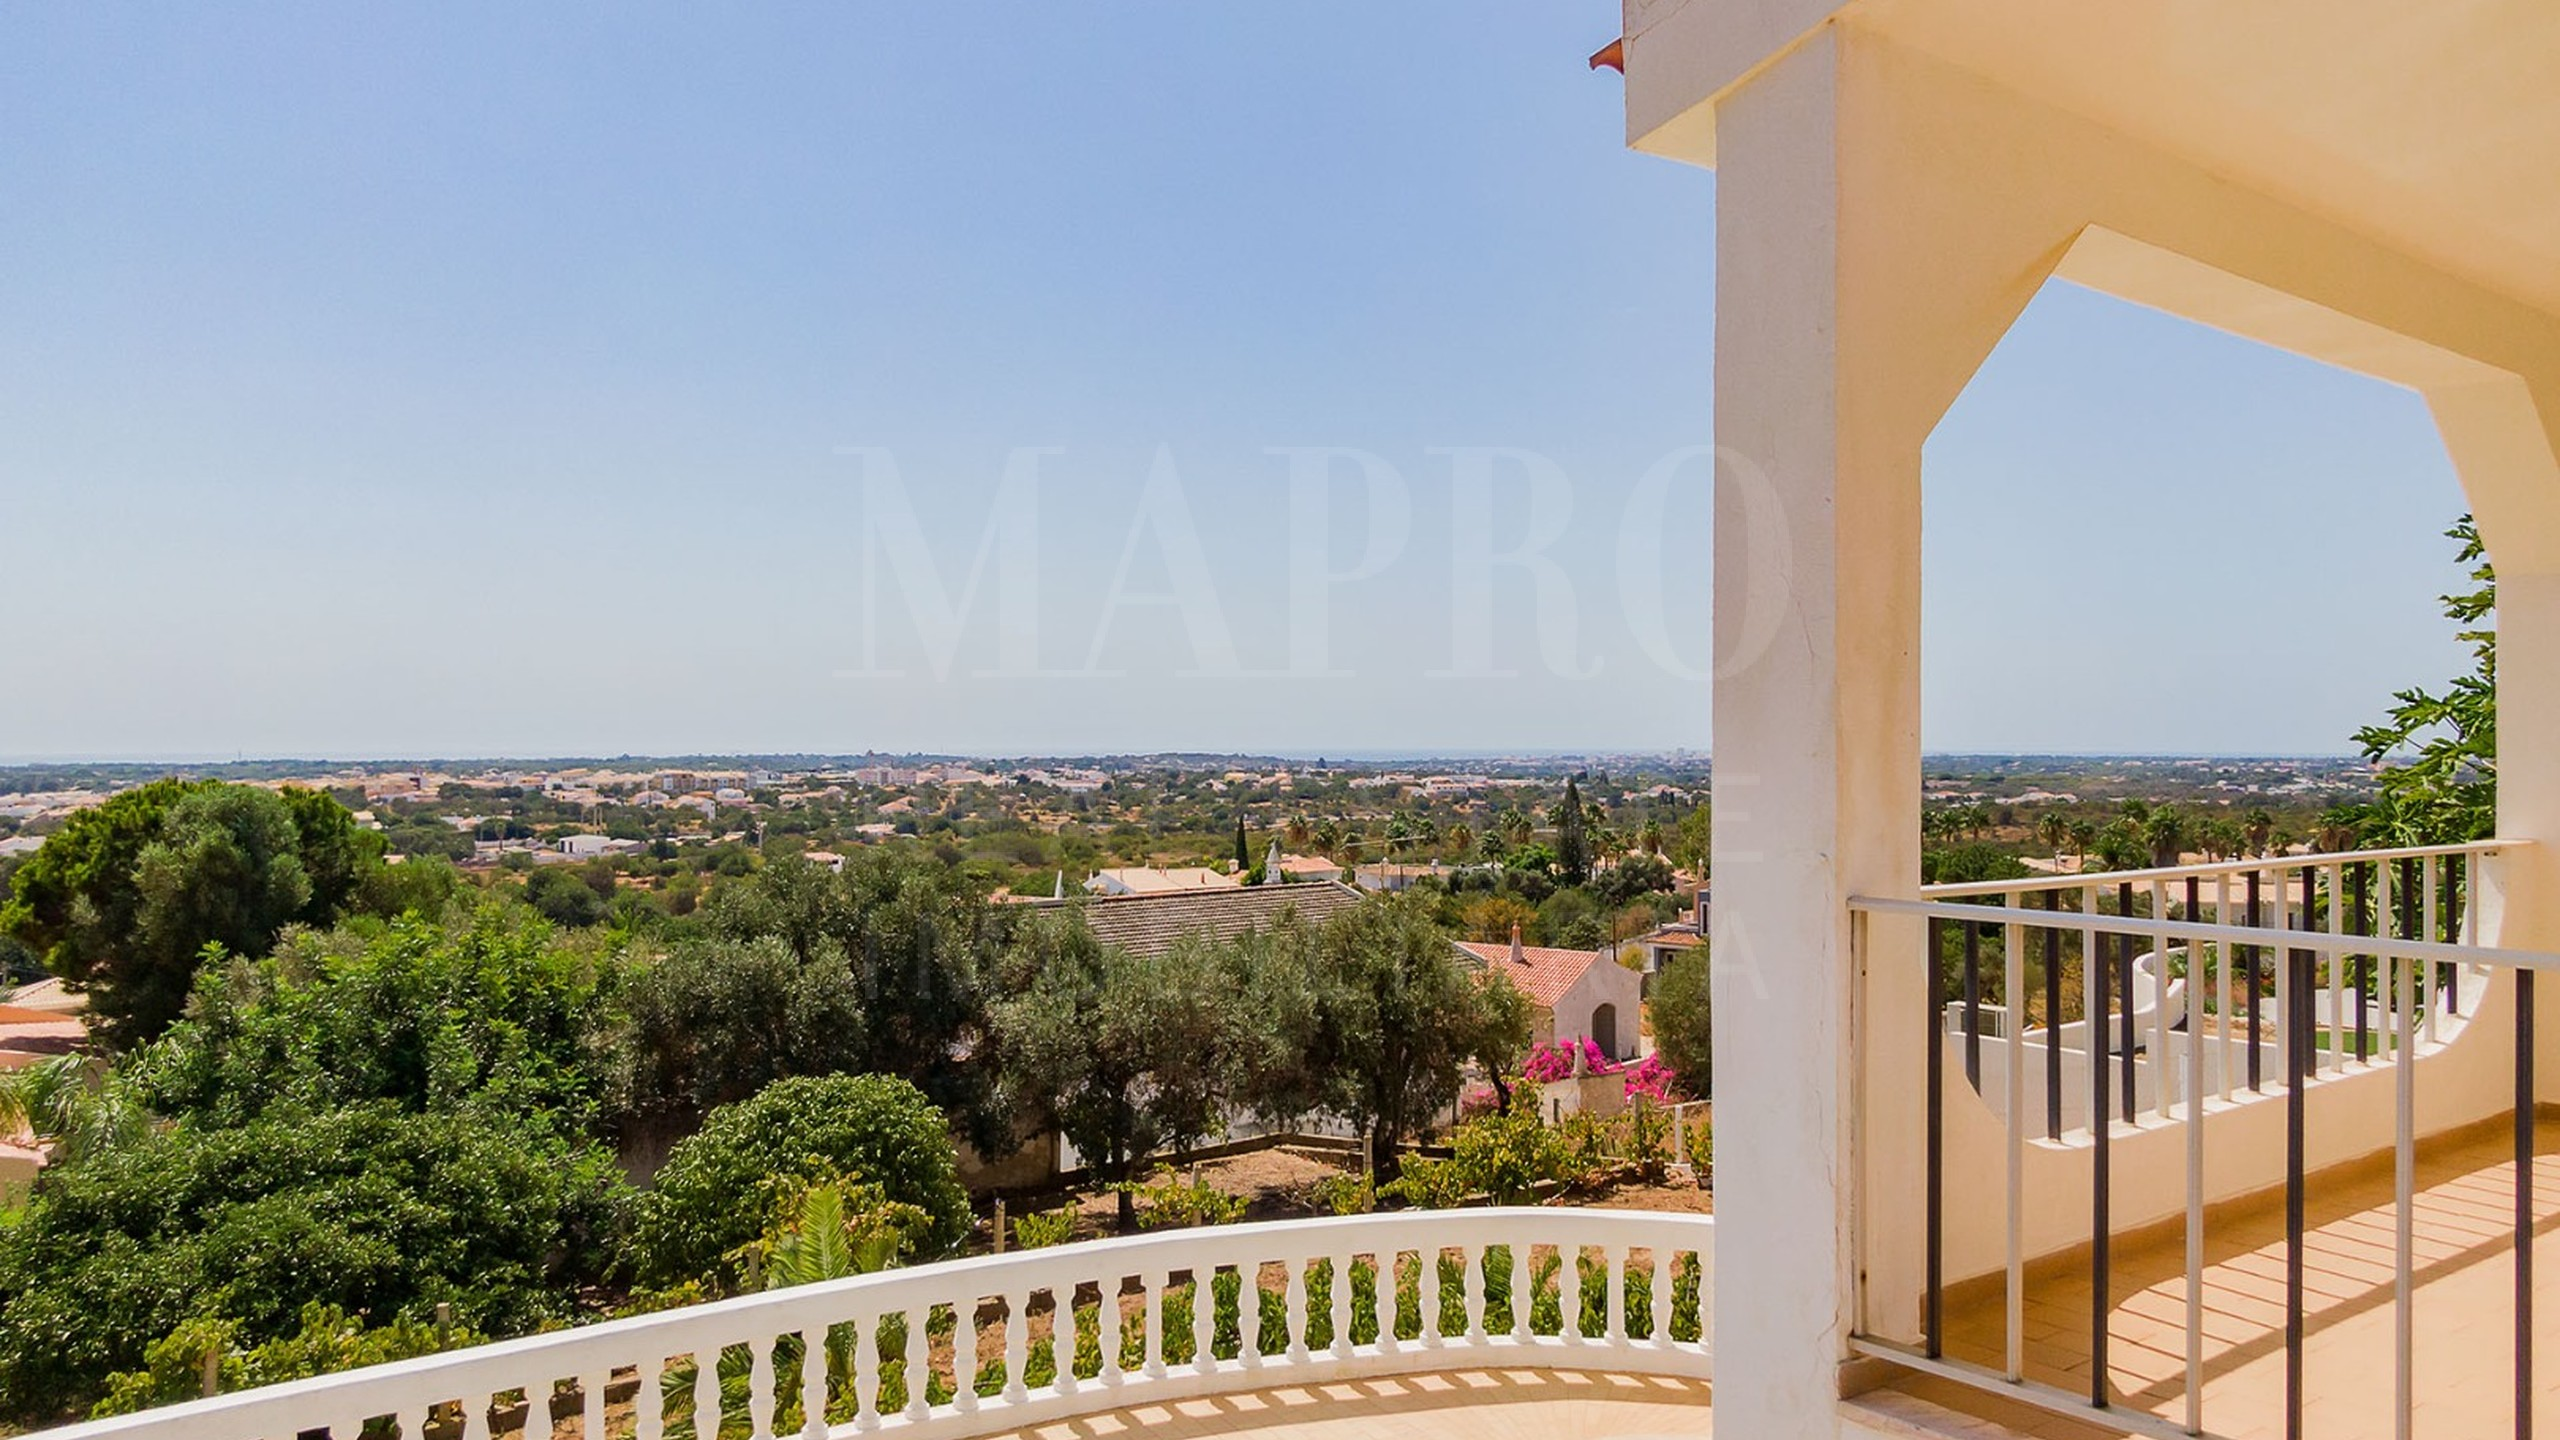 Villa in the countryside of Algarve for sale